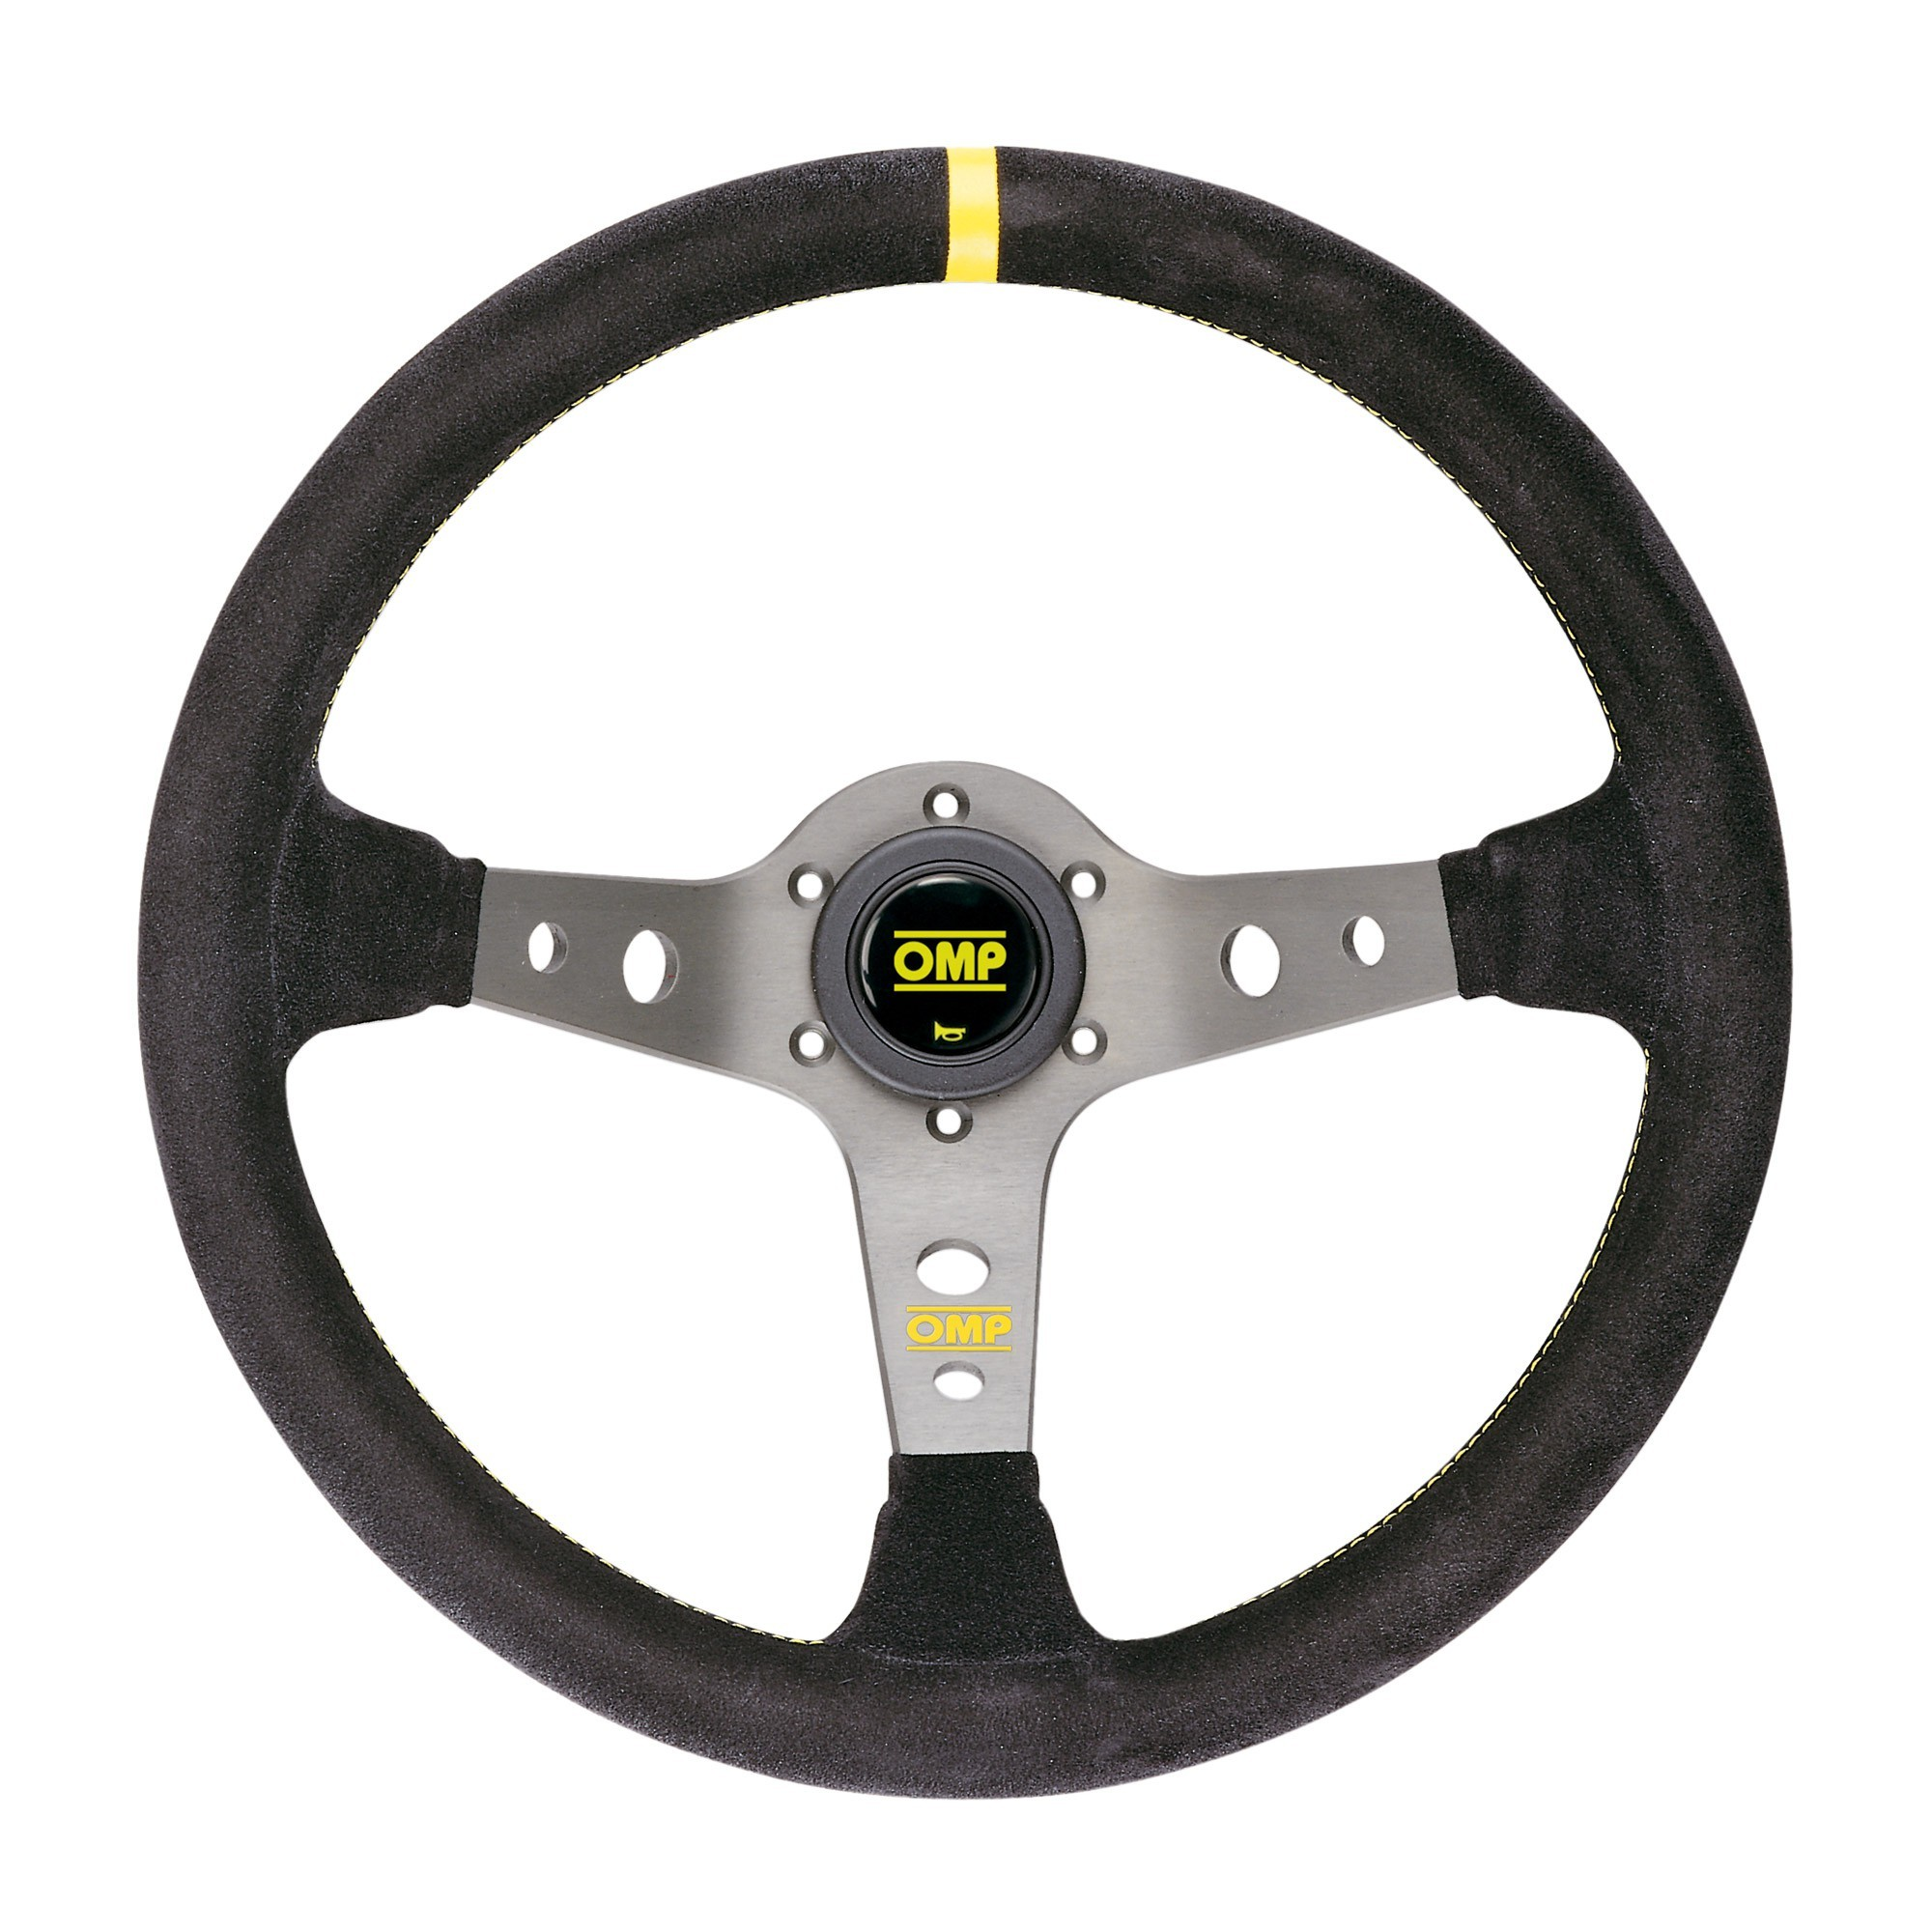 OD//1954//N OMP Corsica Leather Steering Wheel 350mm Black Anodized Spokes